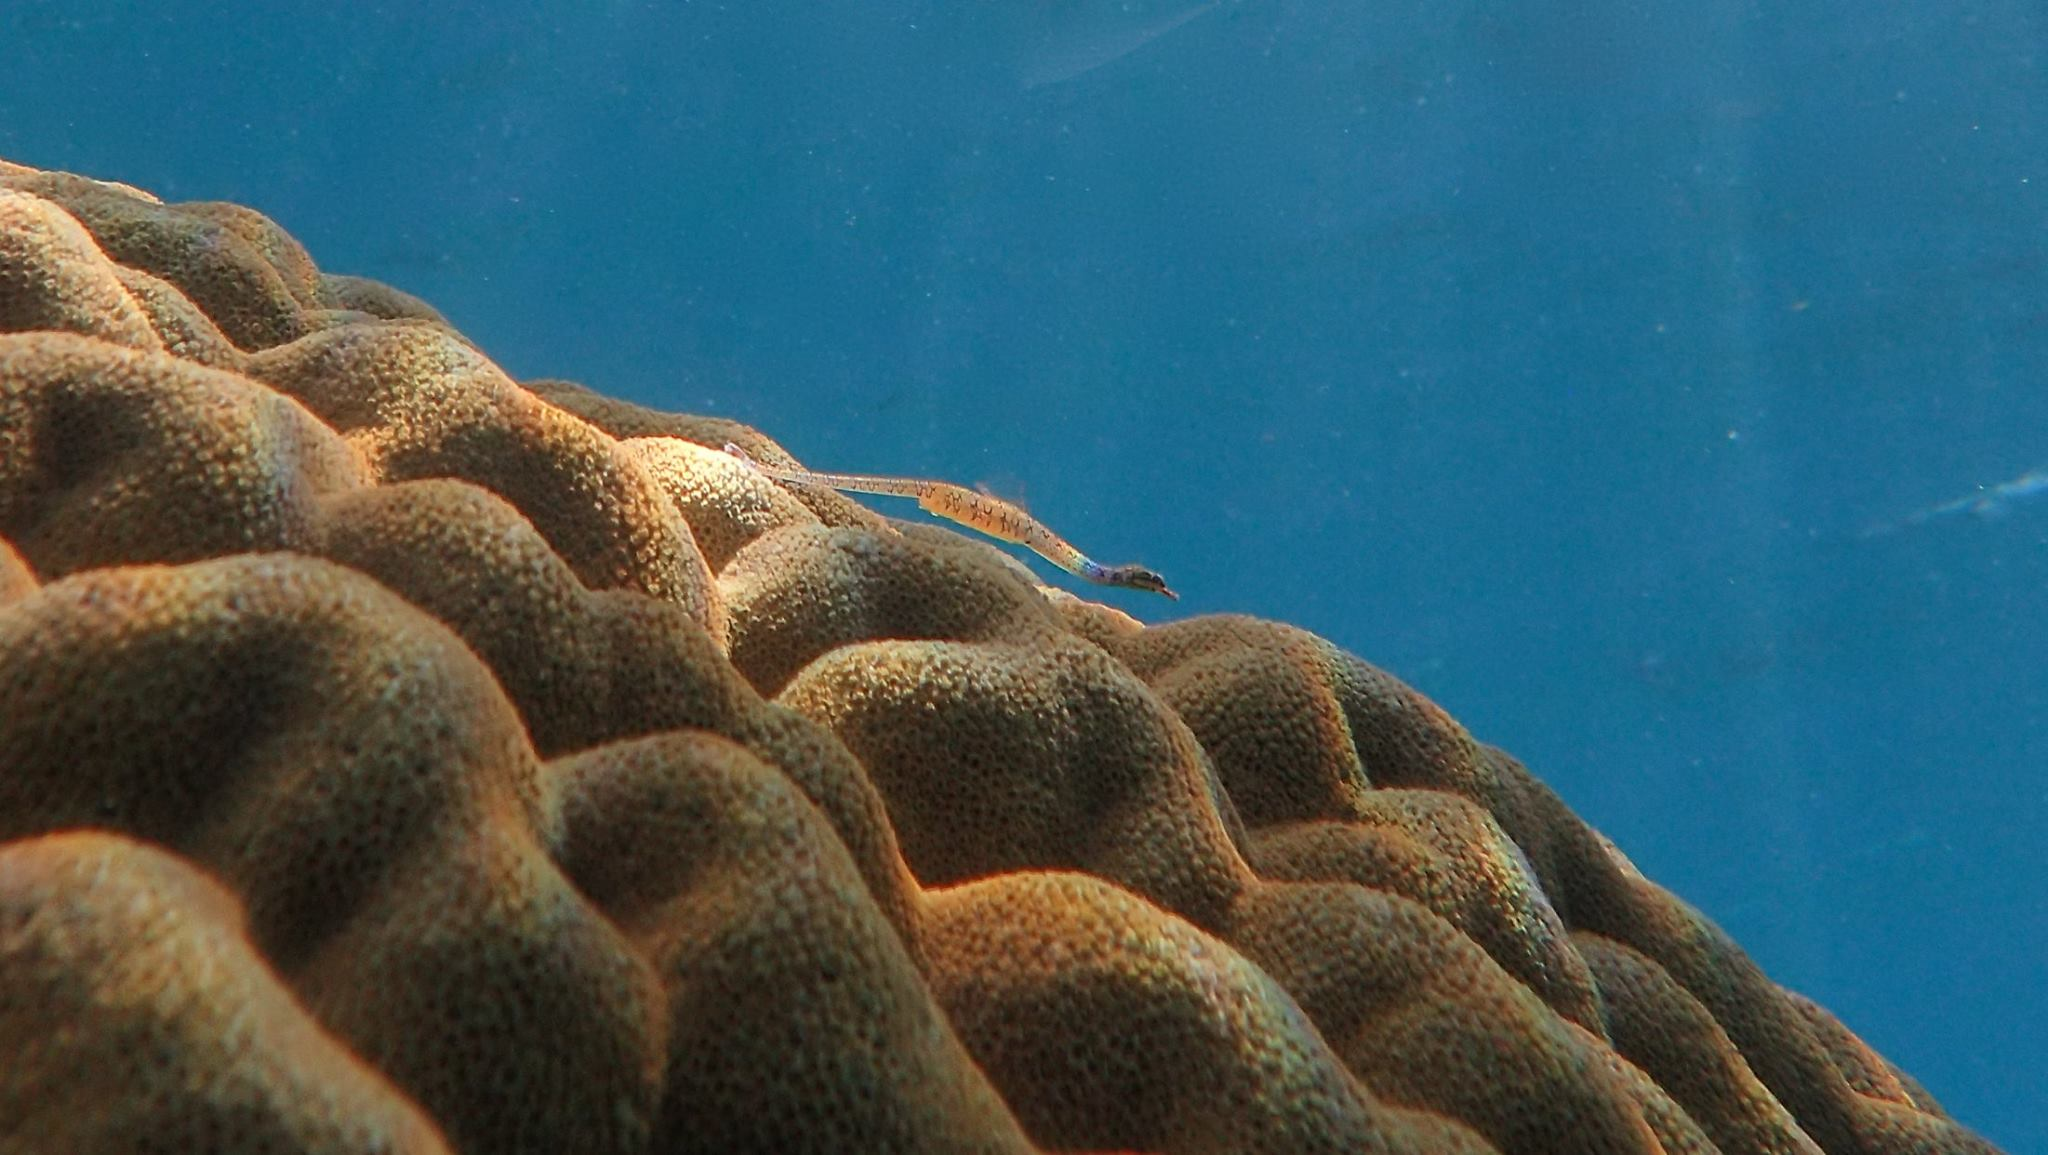 Tiny pipe fish on brain coral